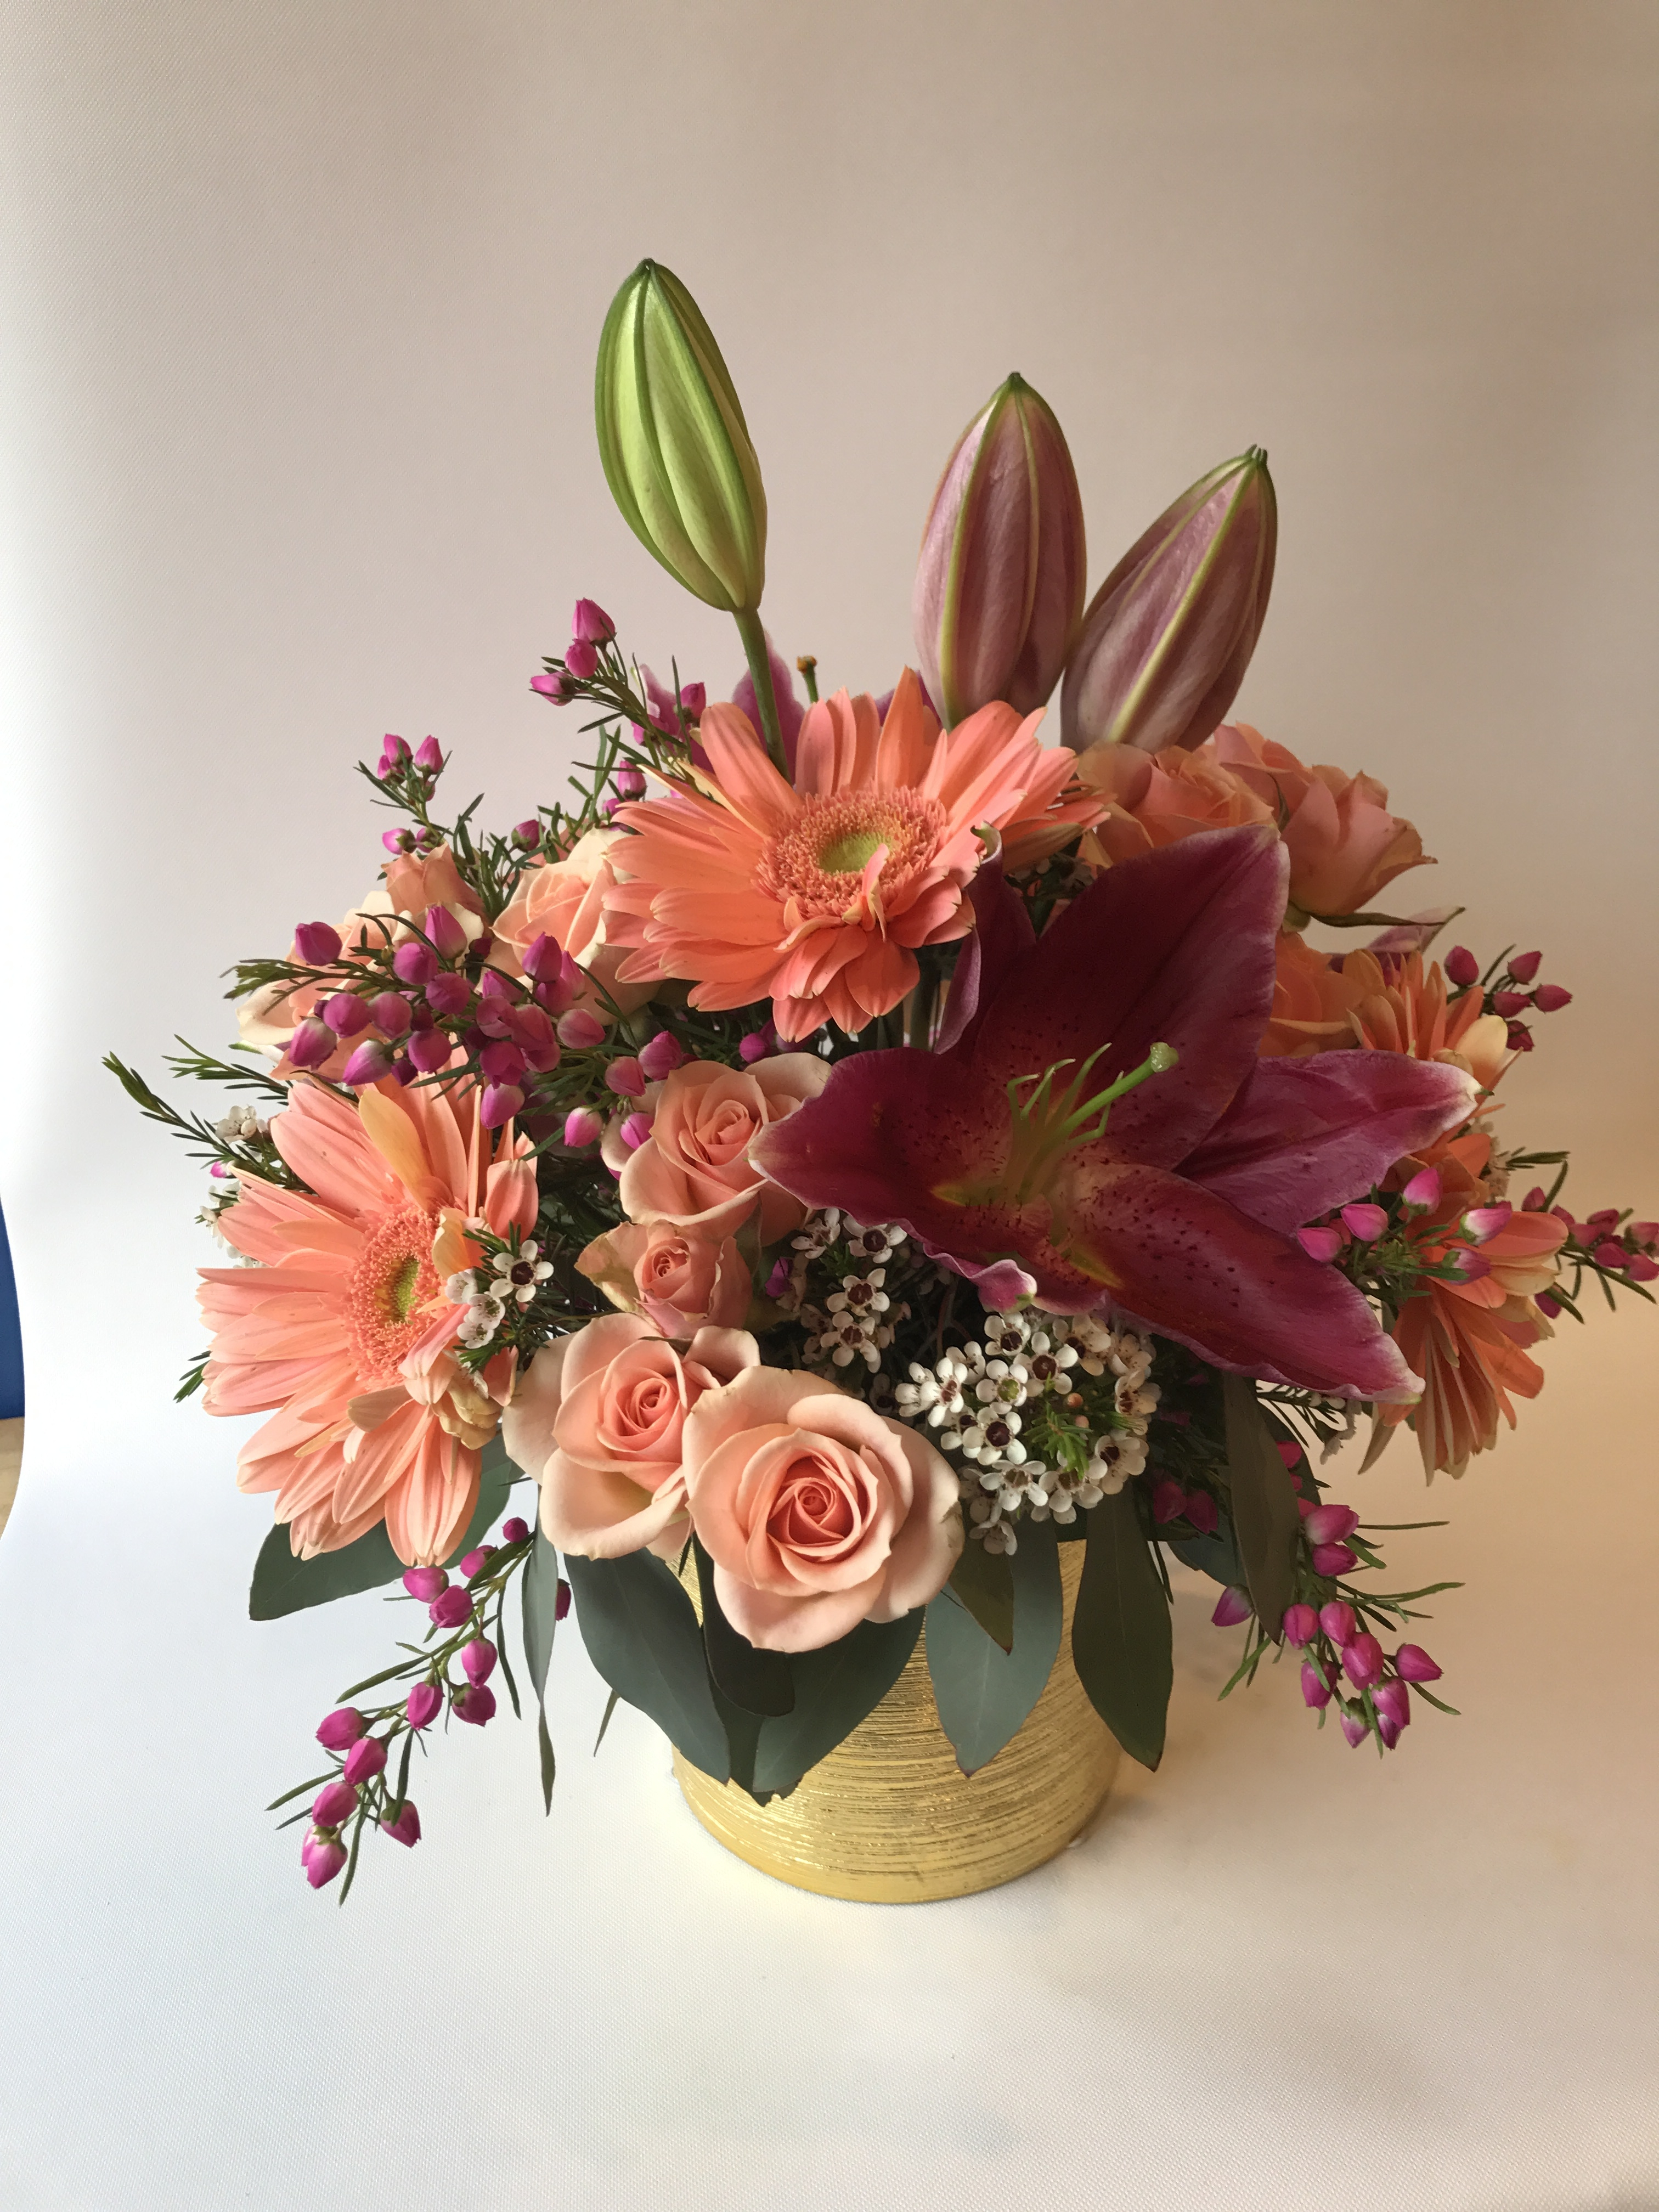 Rose flower delivery florist minneapolis lily lilies florist rose flower delivery florist minneapolis lily lilies florist near me flower shop gerbera gerbera daisy pink flowers white flowers order flowers izmirmasajfo